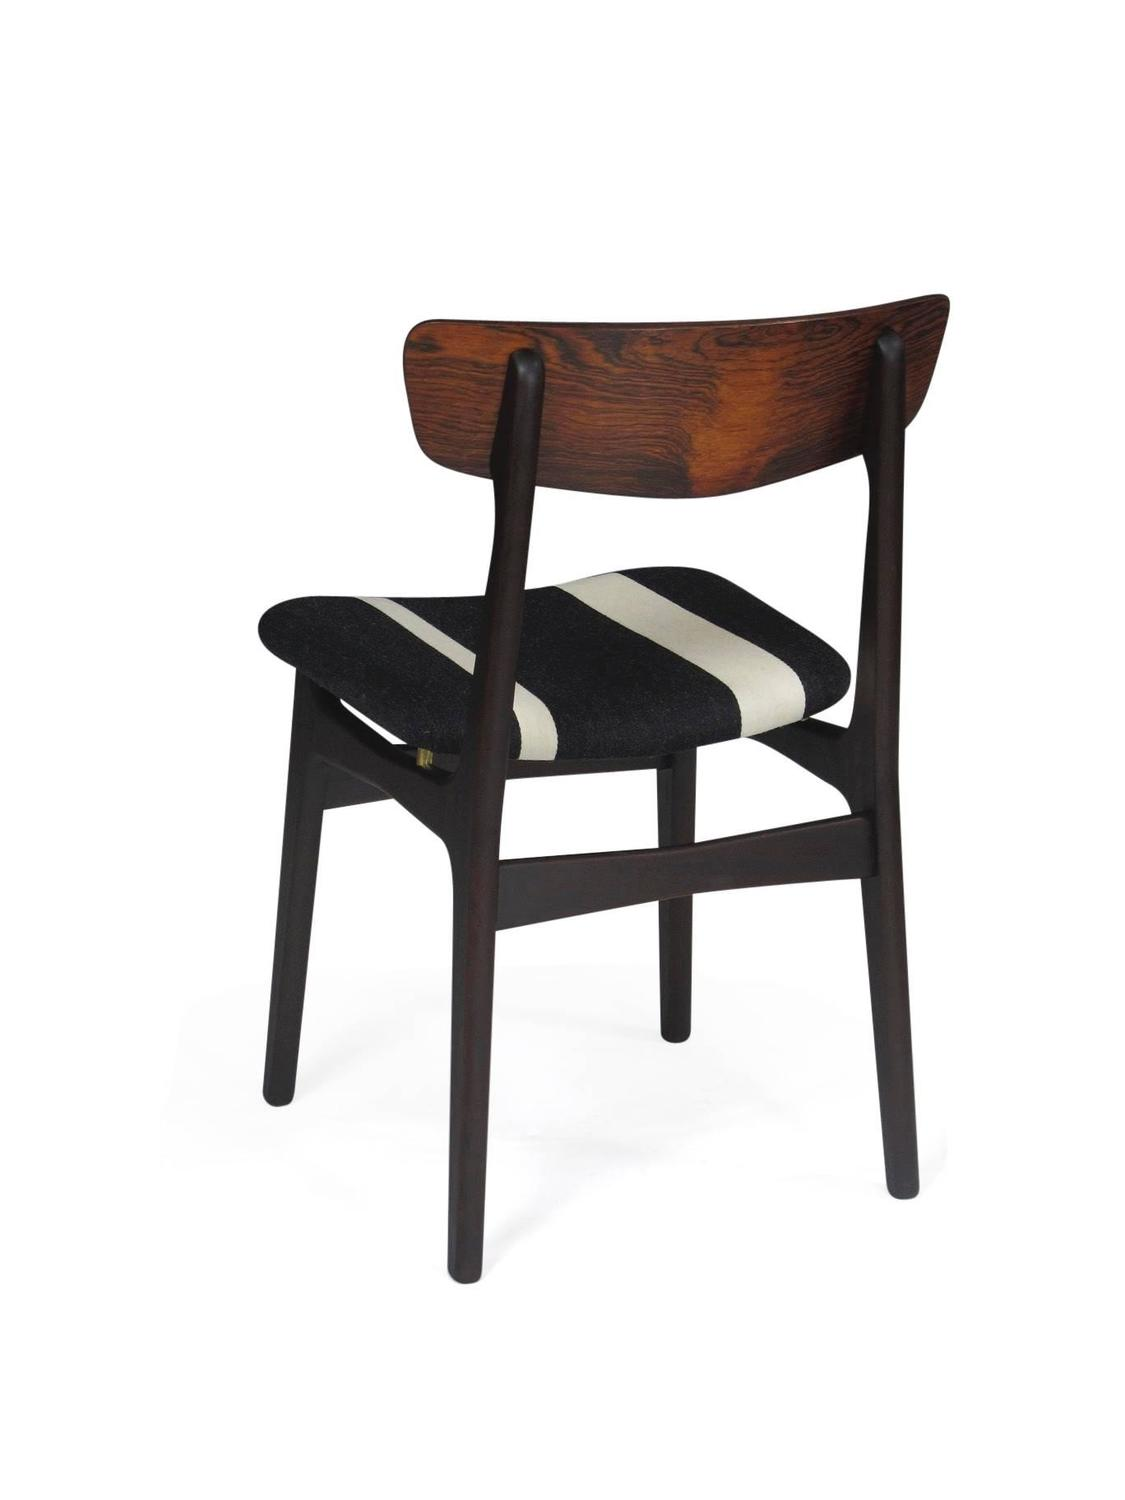 rosewood dining chairs with black white striped